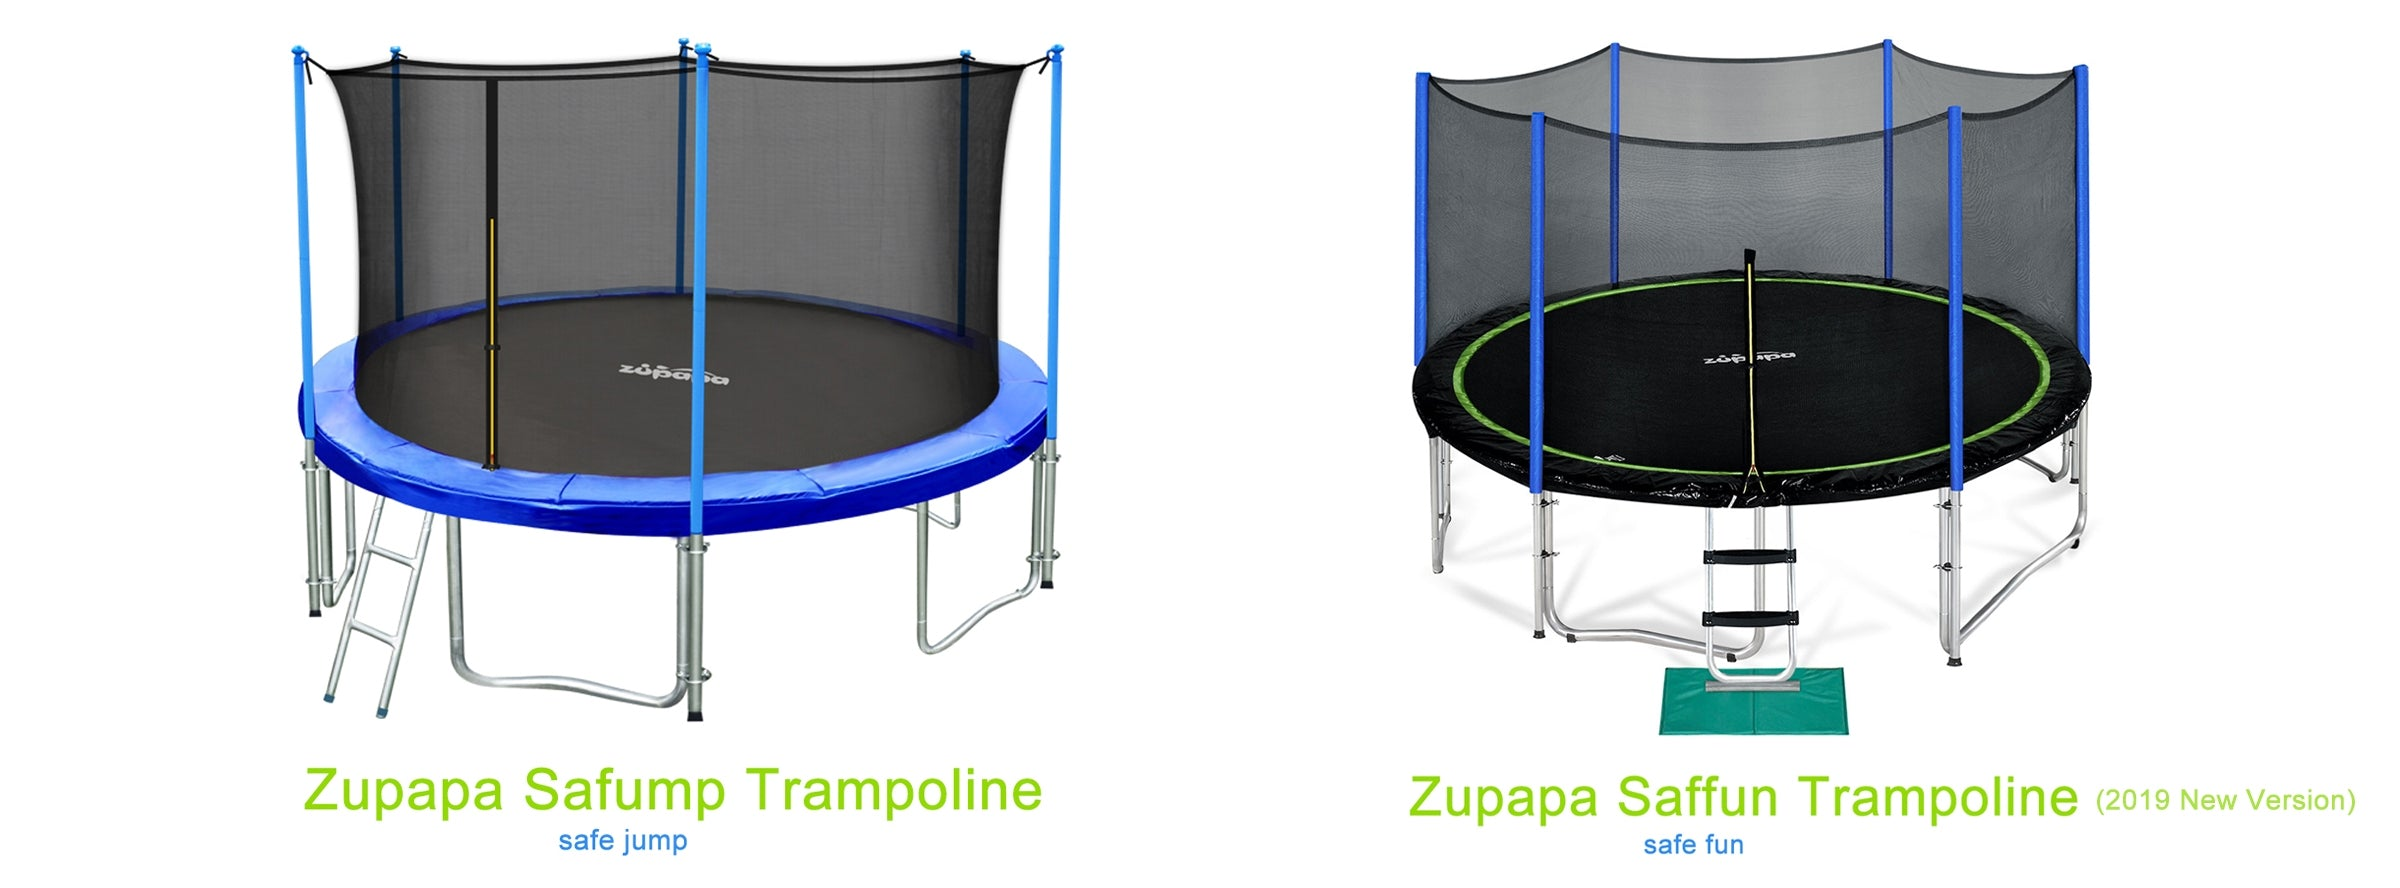 what's the differences between saffun and safump trampoline?